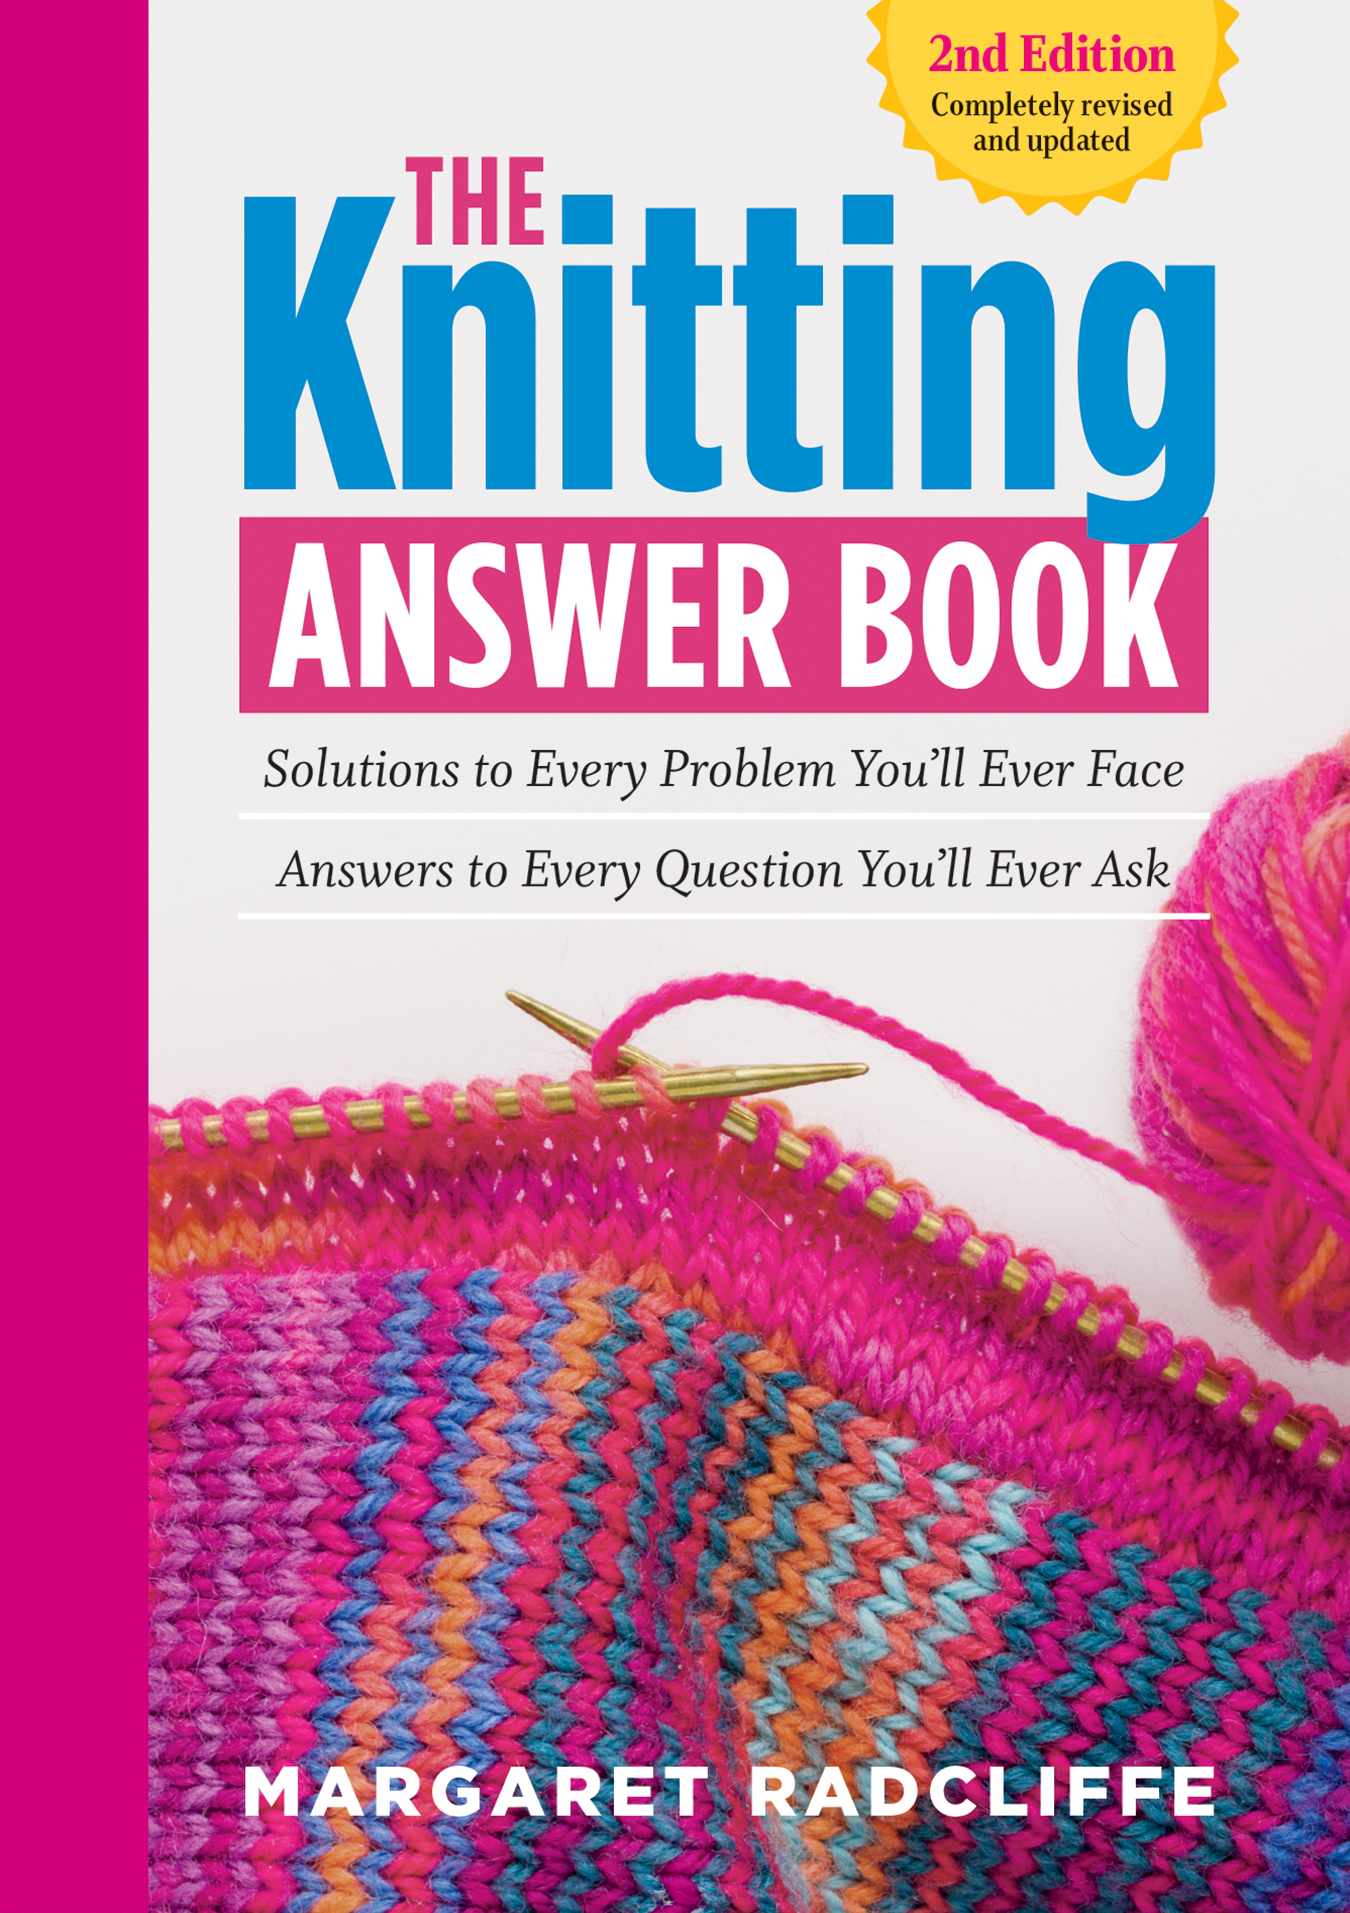 The Knitting Answer Book, 2nd Edition Solutions to Every Problem You'll Ever Face; Answers to Every Question You'll Ever Ask - Margaret Radcliffe